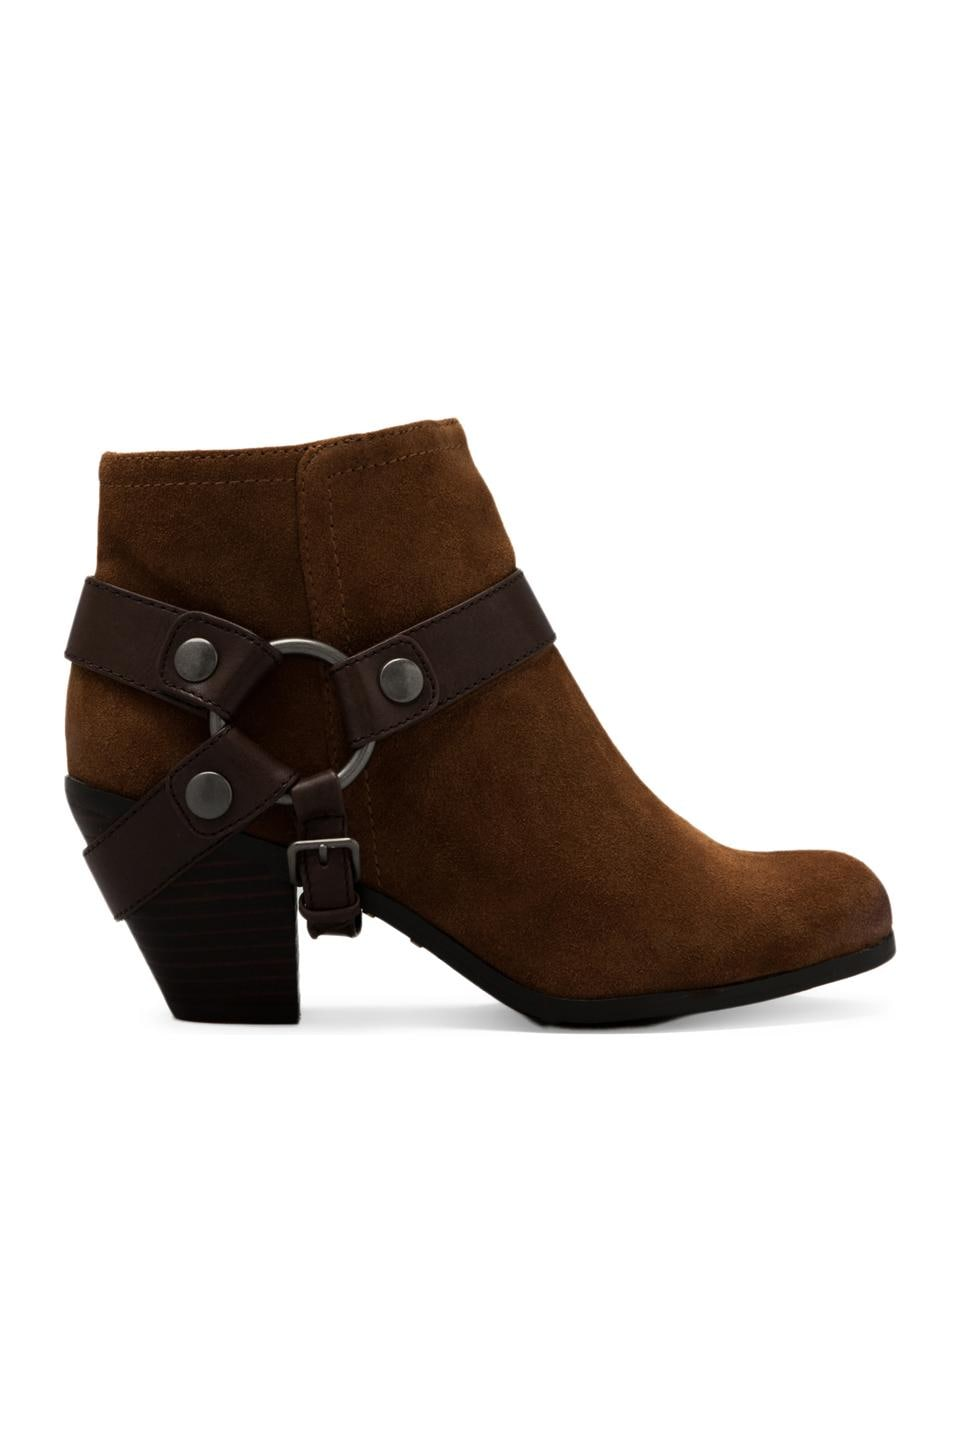 Sam Edelman Landon Boot in Whiskey/Espresso Bean